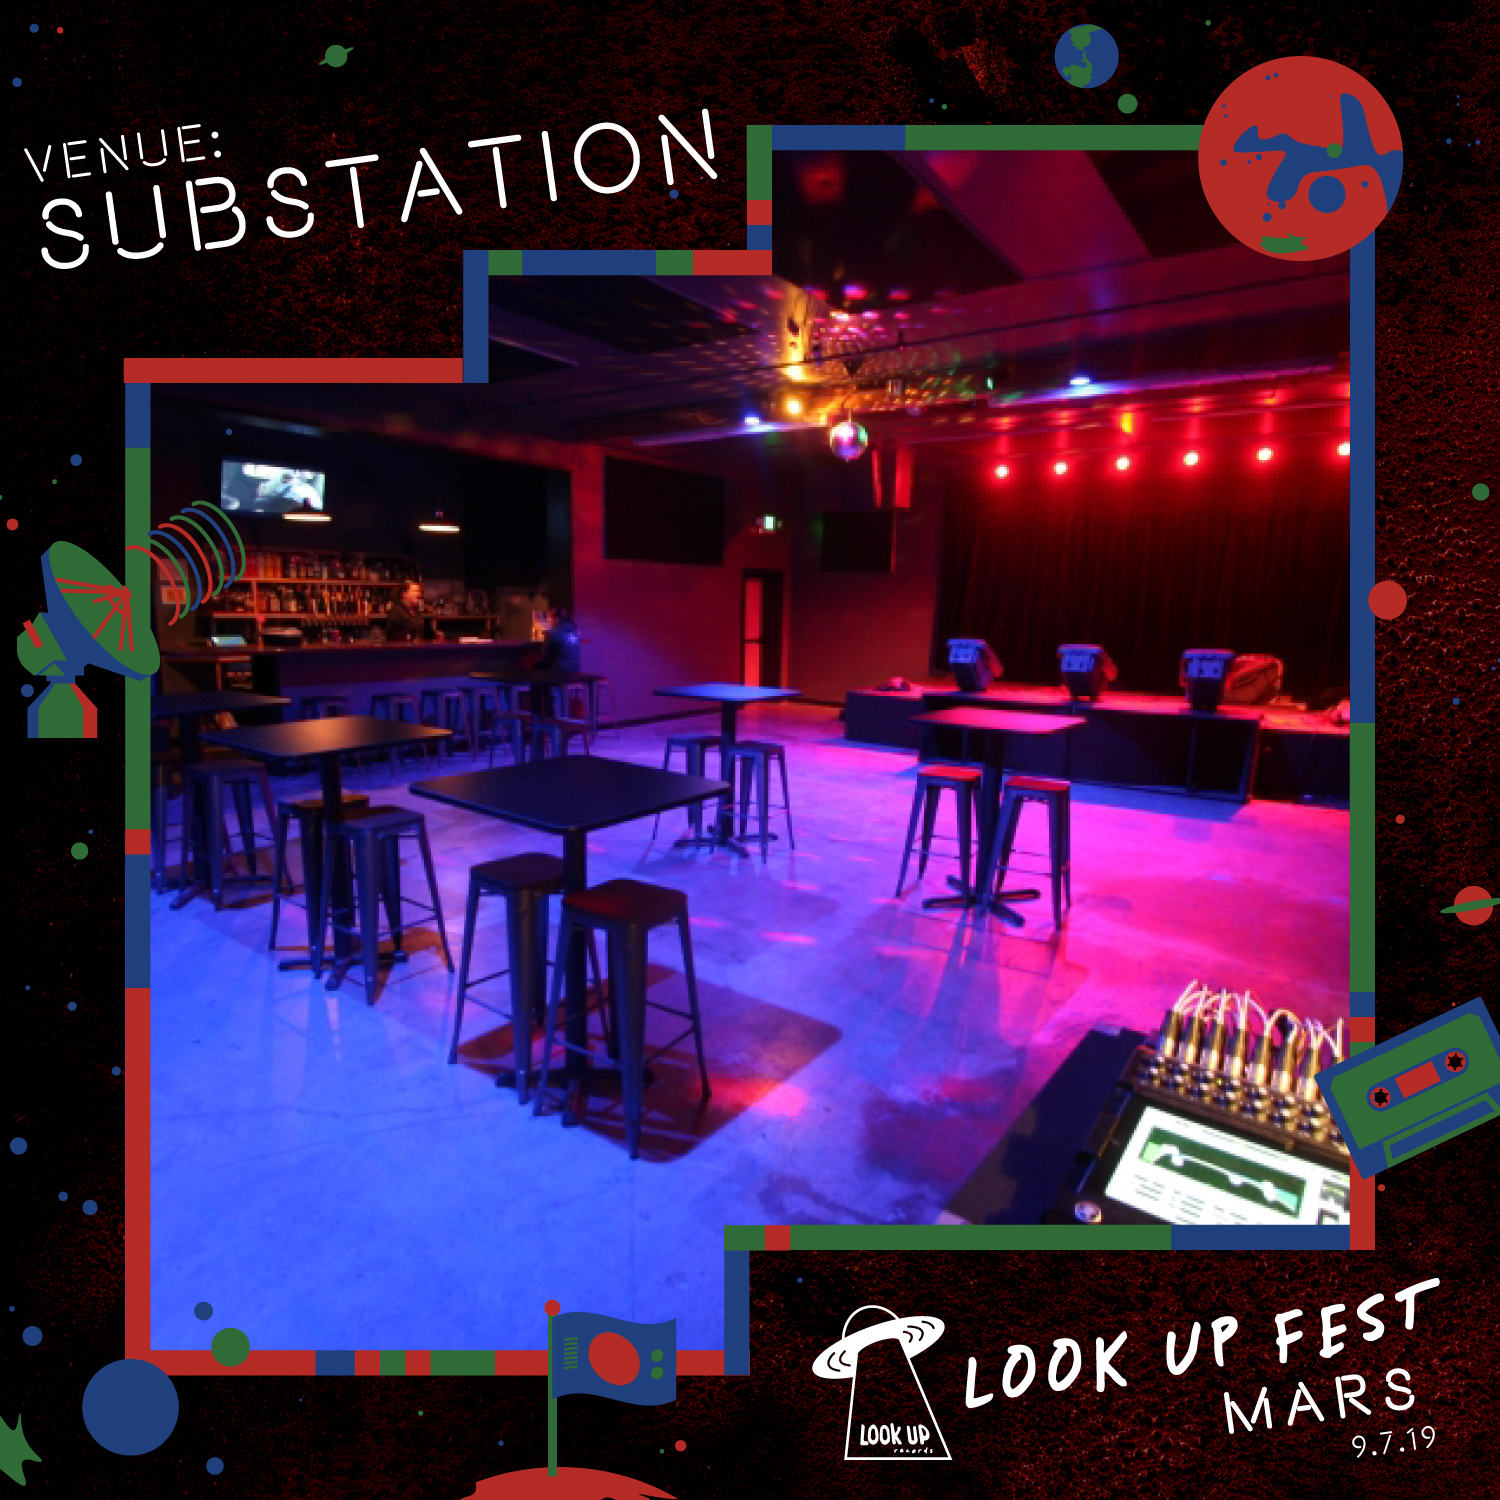 SUBSTATION - We're excited to host this event at Substation, a staple venue in Fremont/Ballard with a track record of supporting the DIY and weird. We booked all the dark hallways, stages, and spooky rooms they had available.